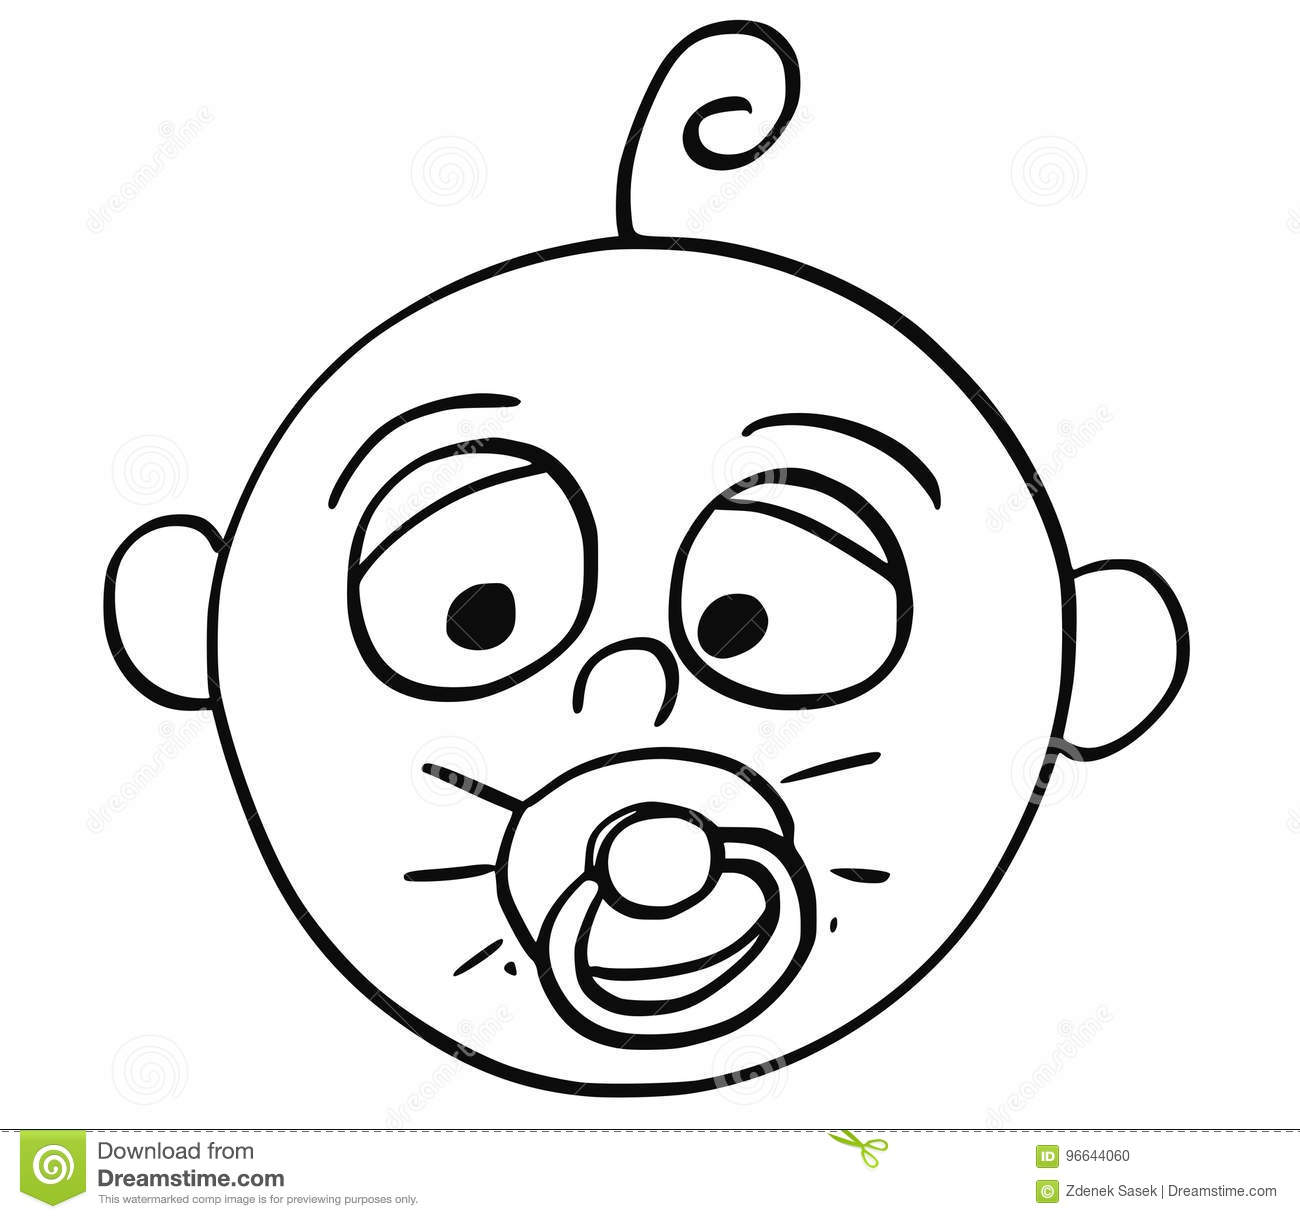 cartoon illustration of baby with dummy or forter or pacifier Somebody Audio hand drawing cartoon vector illustration of tired baby with dummy or forter or pacifier in mouth